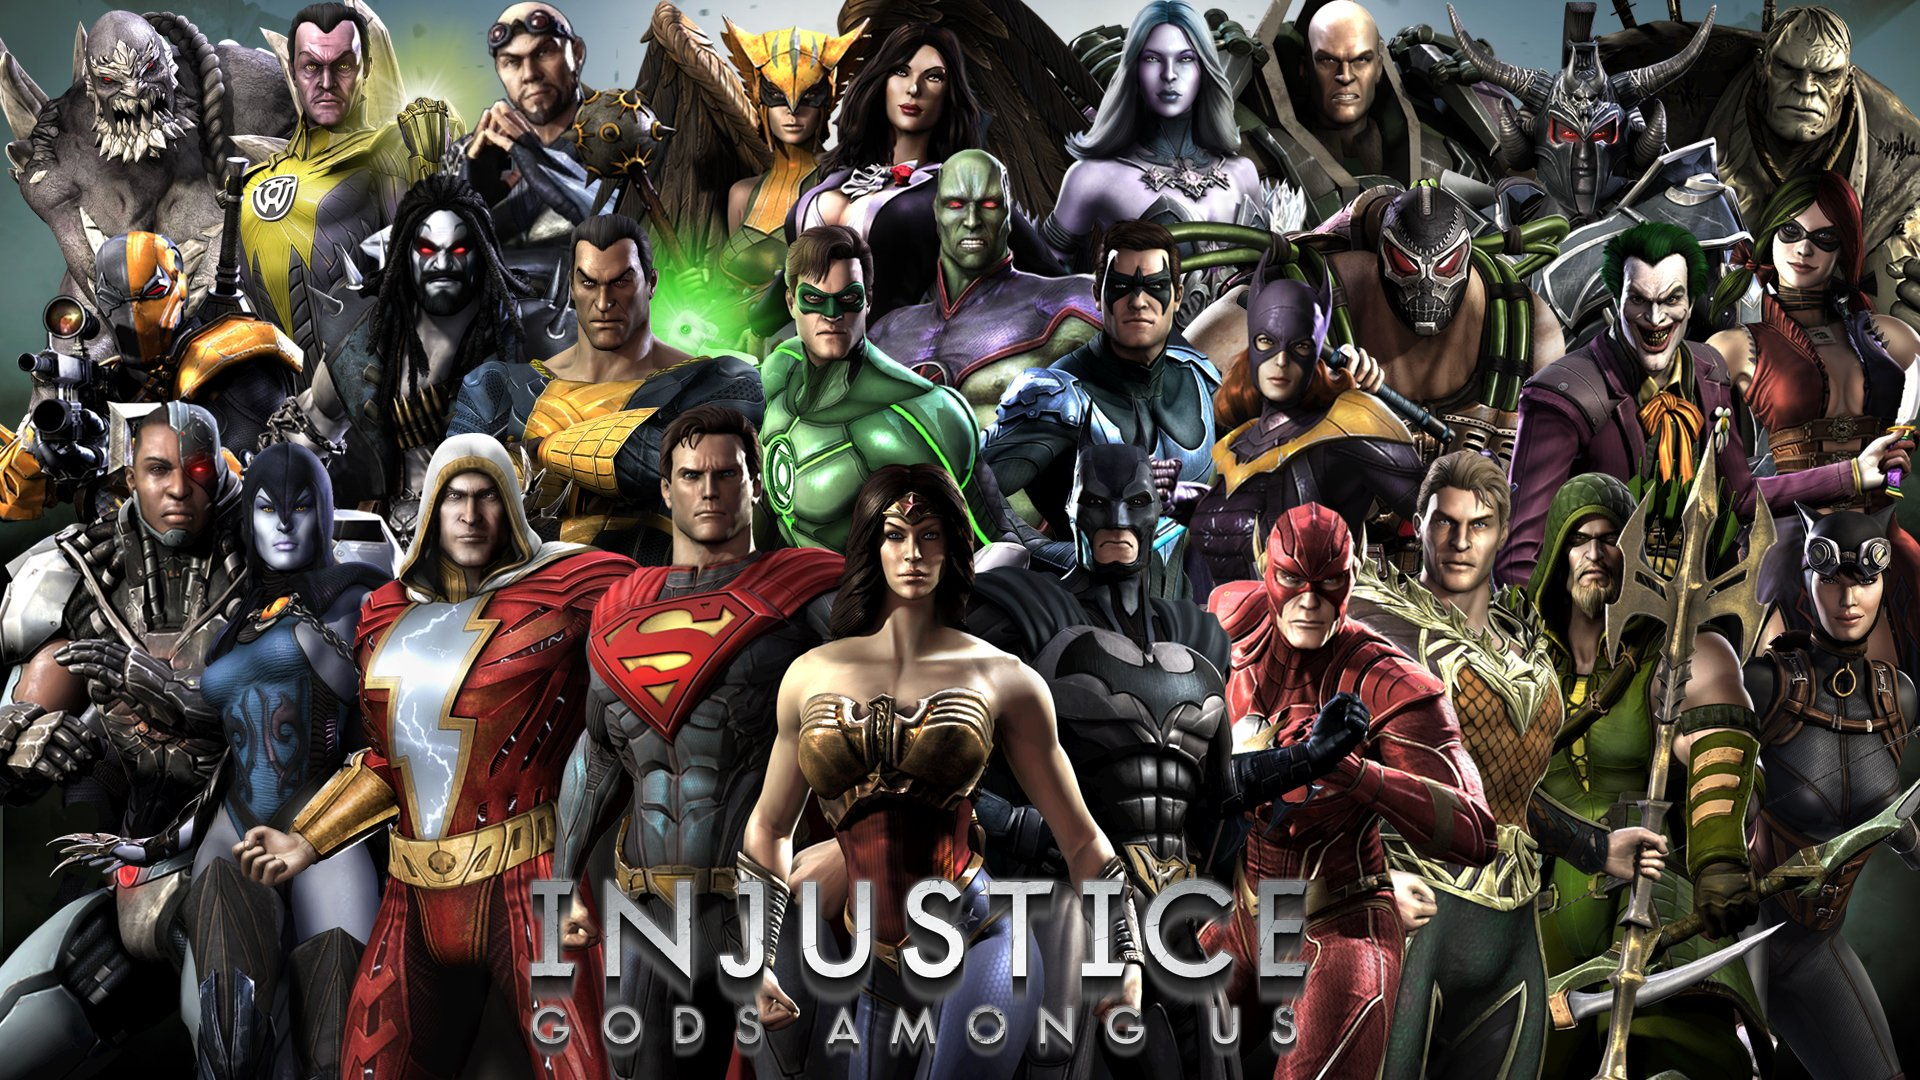 102 Injustice: Gods Among Us HD Wallpapers | Backgrounds